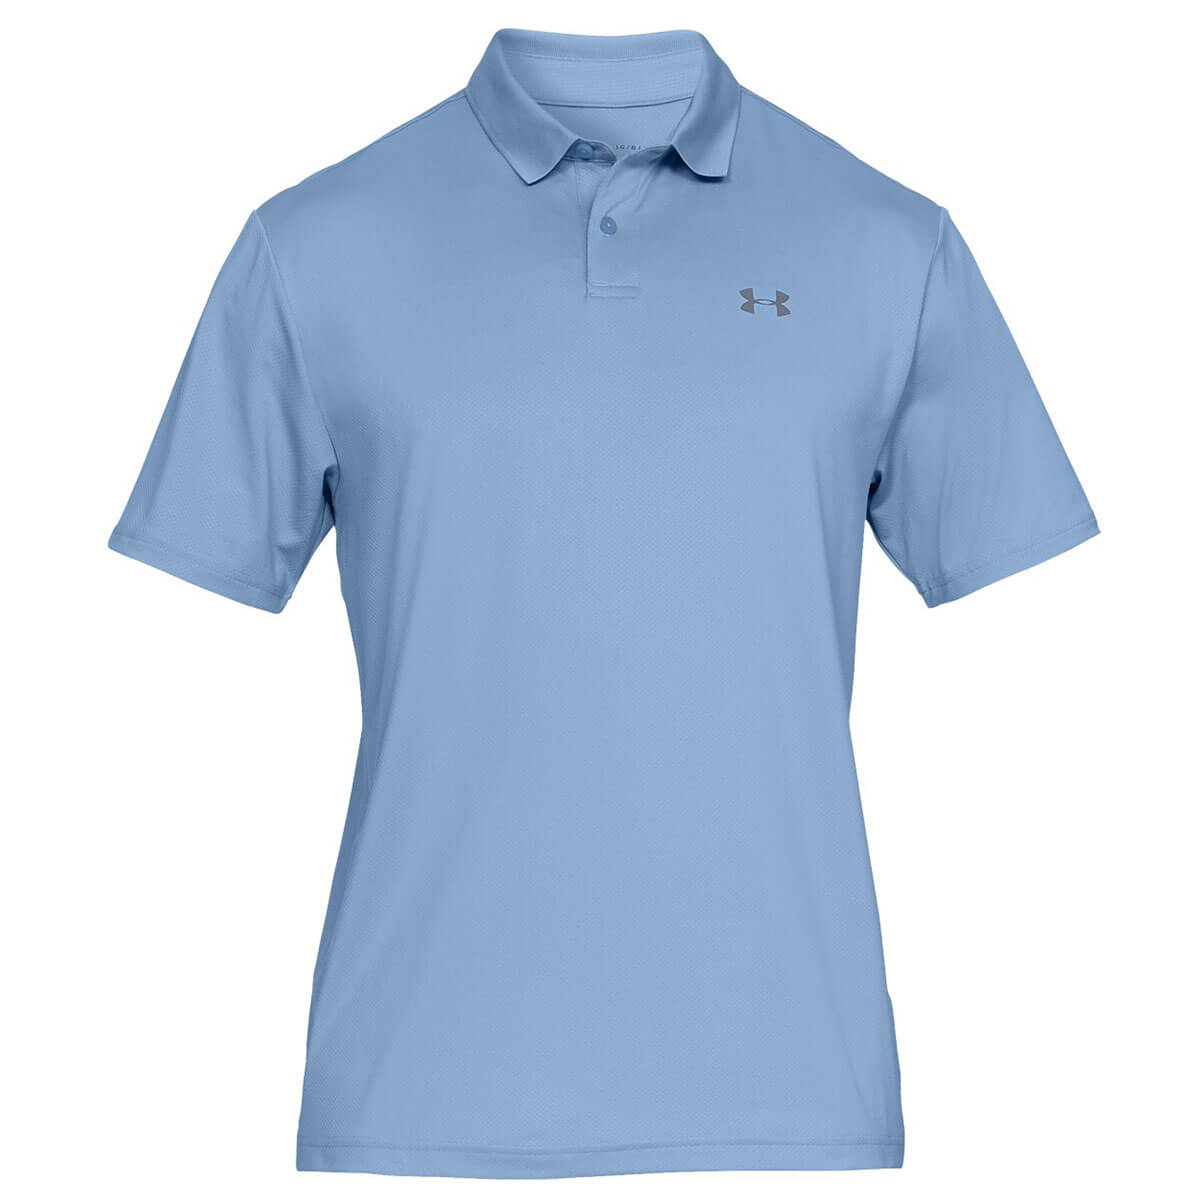 Under-Armour-Mens-2019-Performance-2-0-Stretch-Durable-Smooth-Golf-Polo-Shirt thumbnail 20